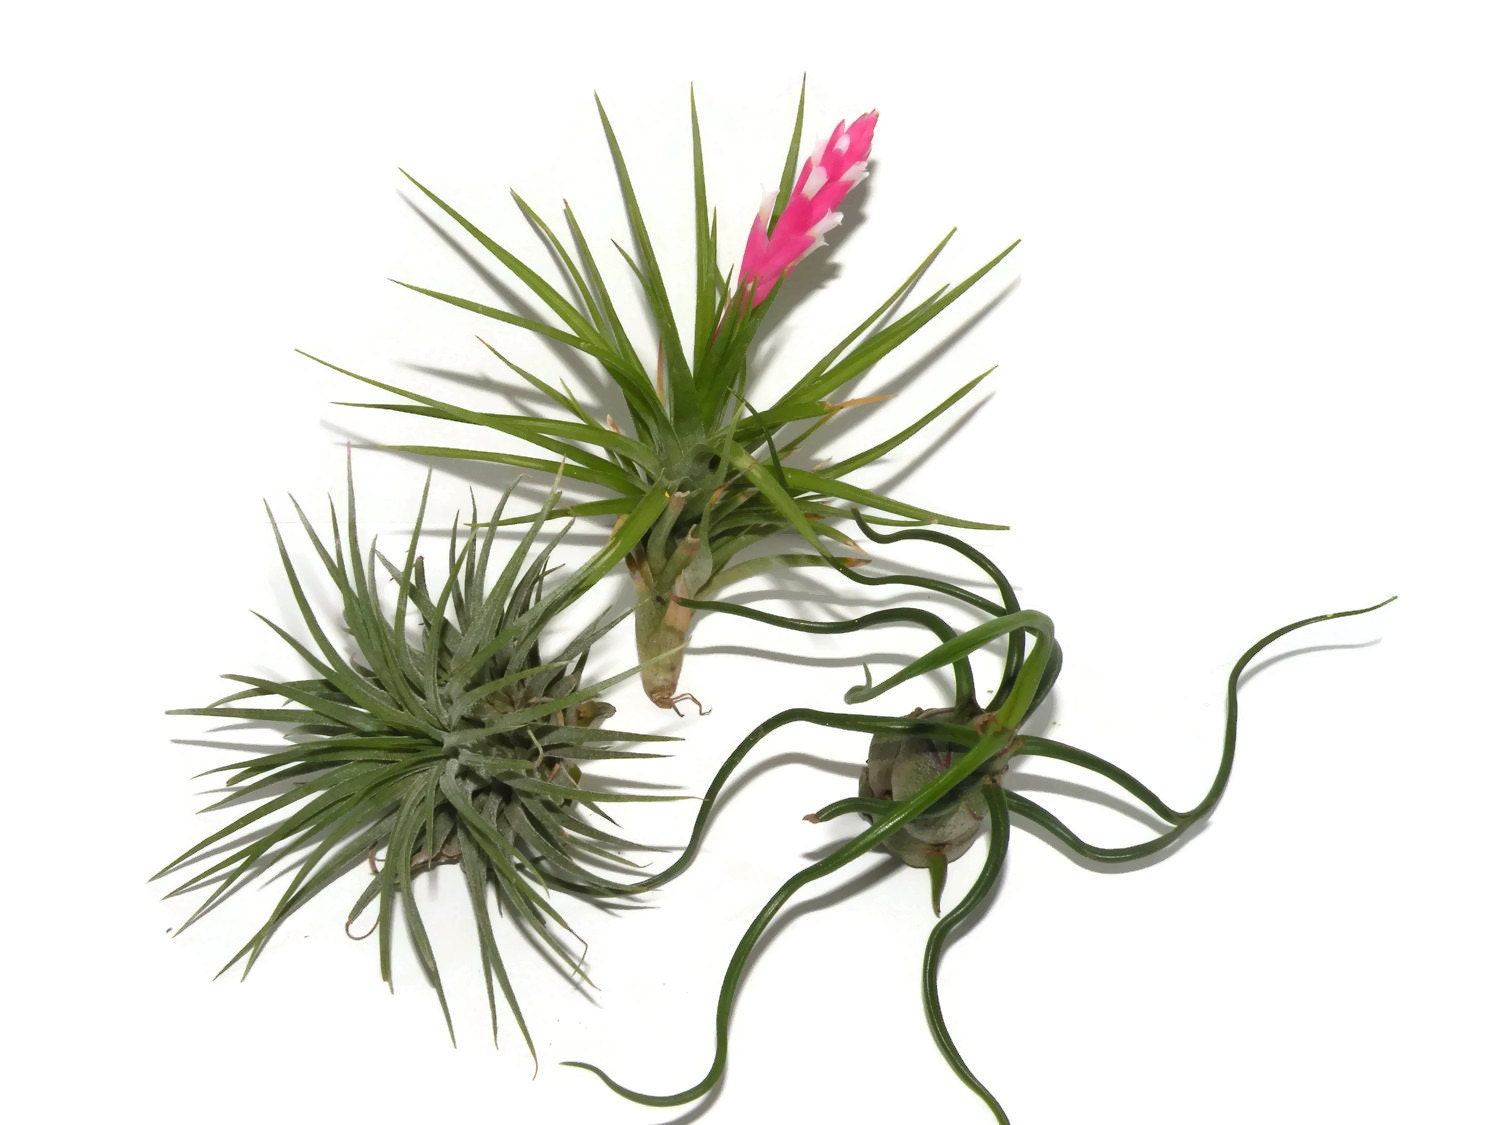 Air plants for sale group of 3 healthy plants by - Healthiest houseplants fresh air delight ...